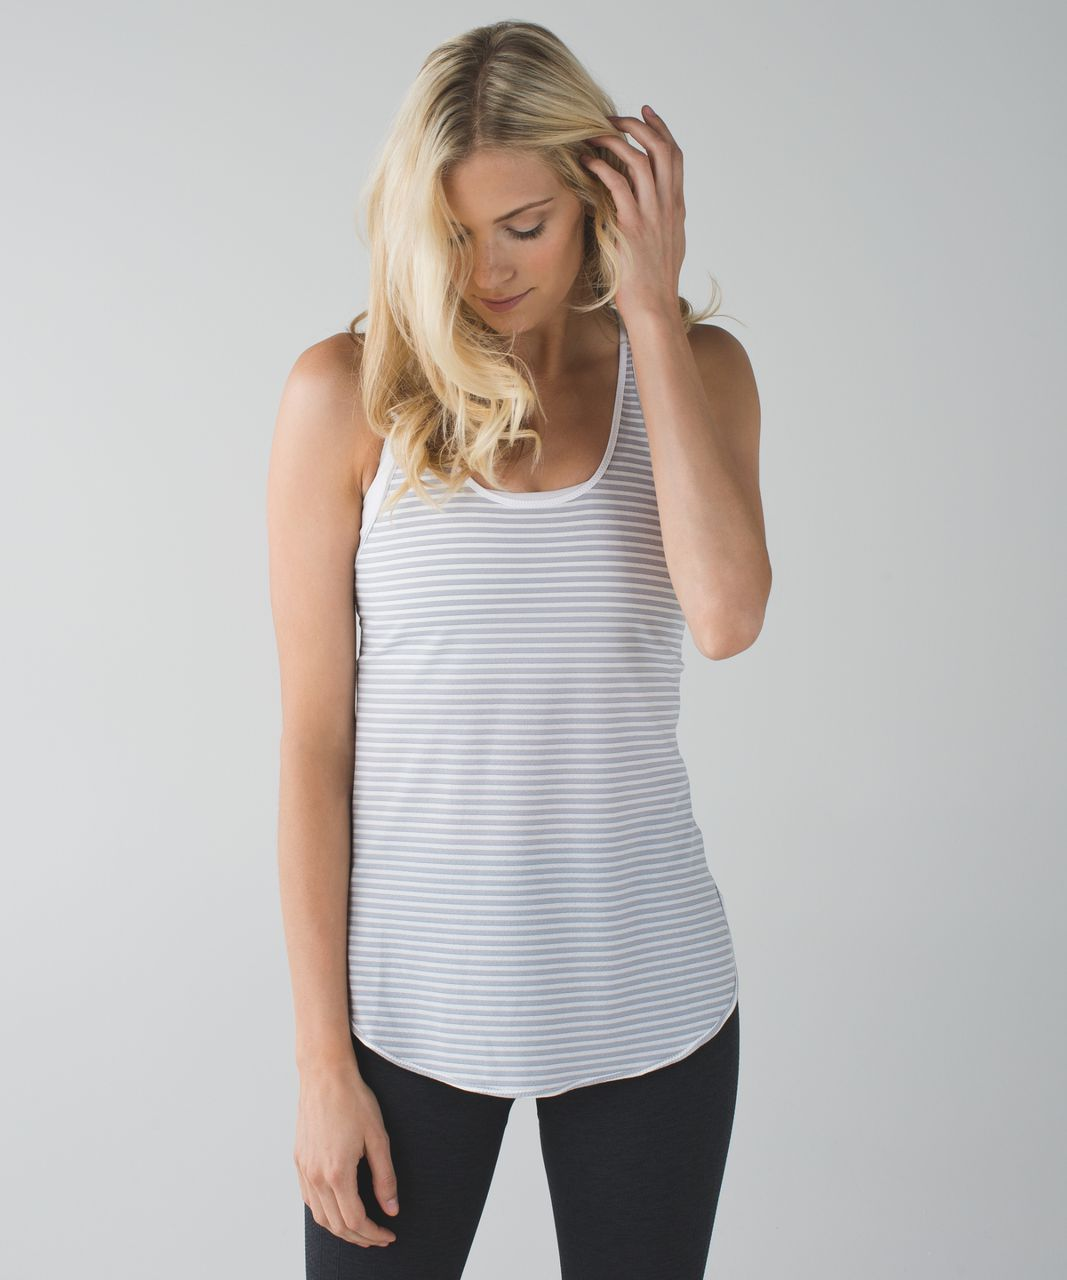 Lululemon What The Sport Singlet - Silver Stripe Silver Fox White